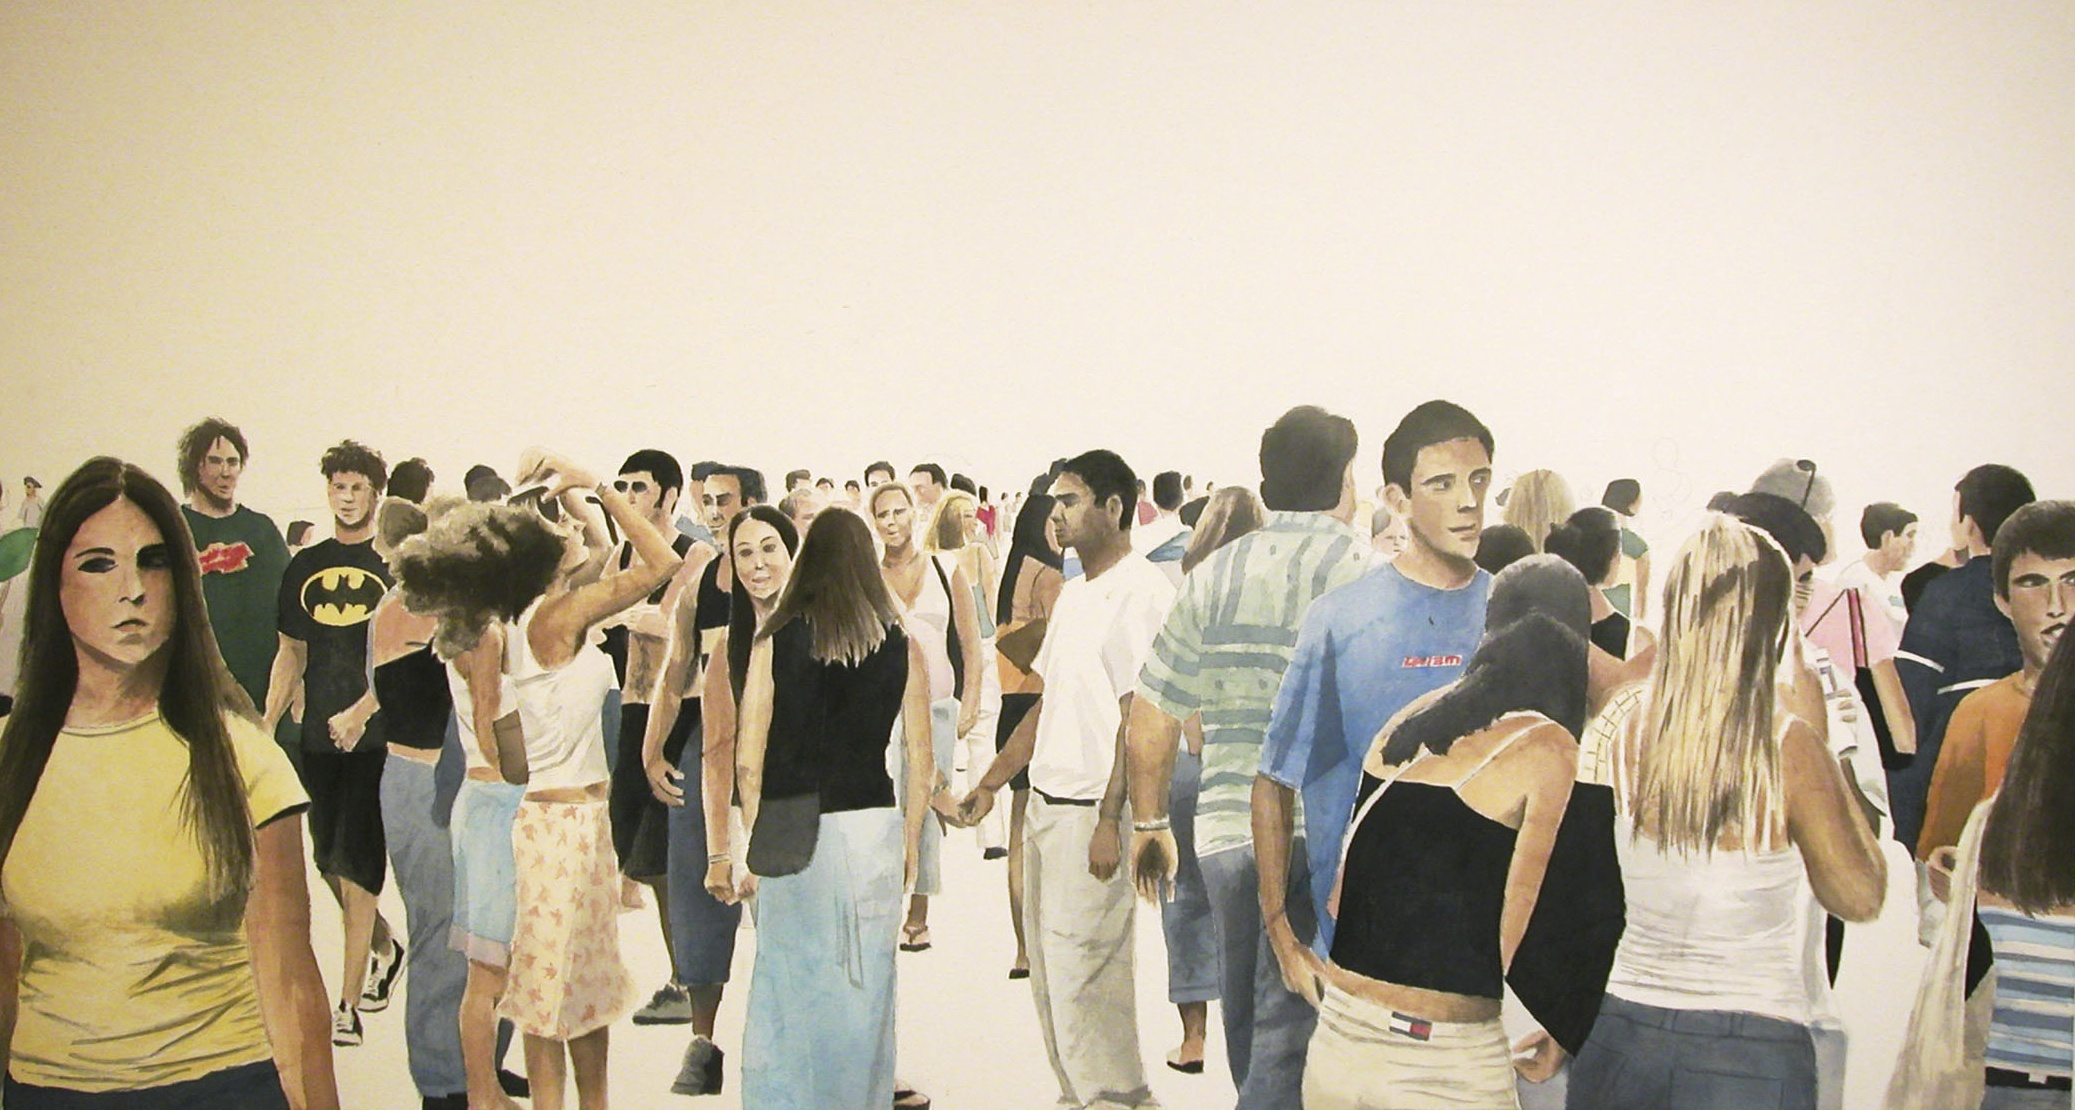 Street Crowd, 2007, acrylic on canvas, 38 x 72 in.